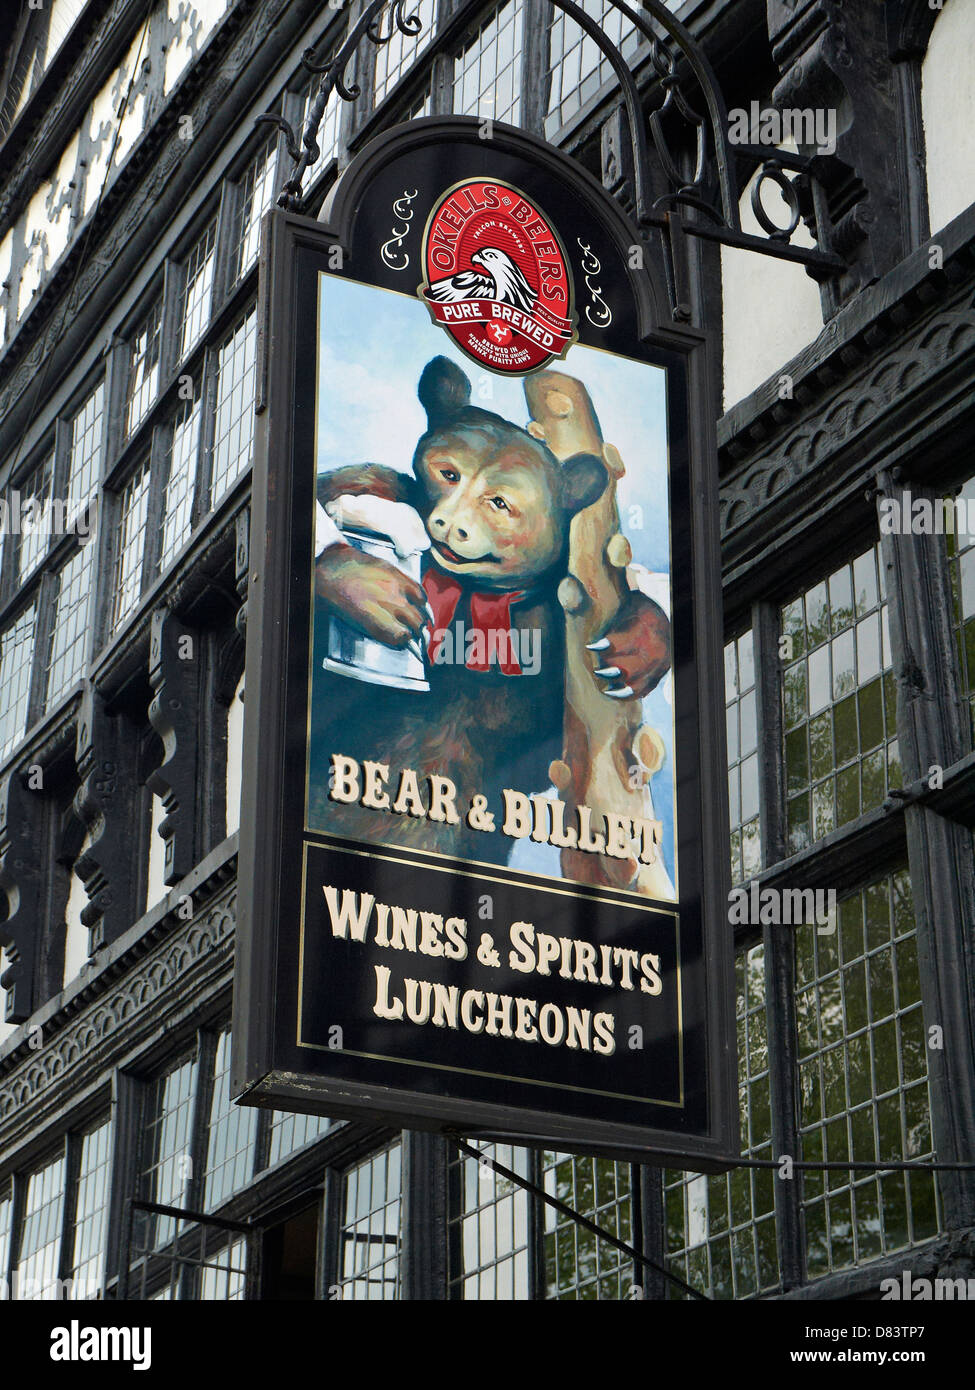 Bear & Billet pub sign in Chester Cheshire UK - Stock Image